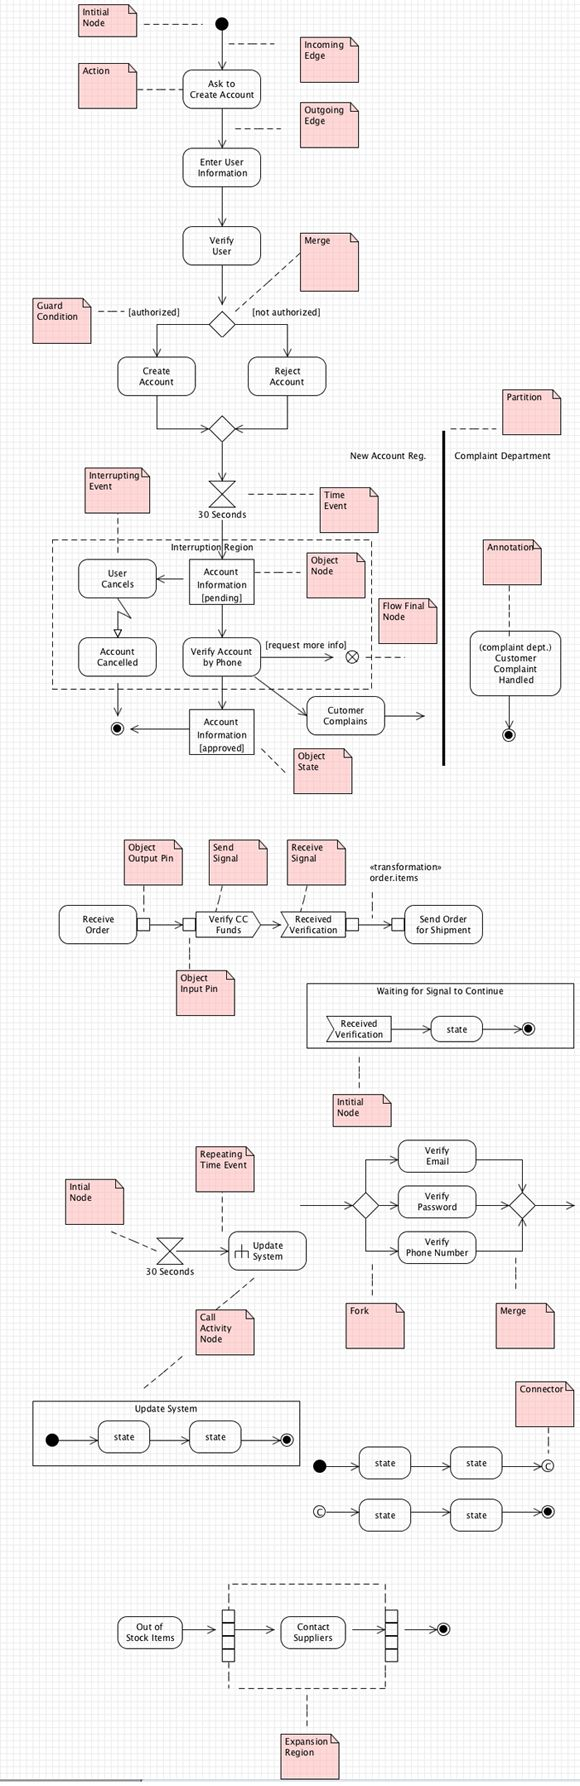 28 Best Images About Uml  Activity Diagram On Pinterest